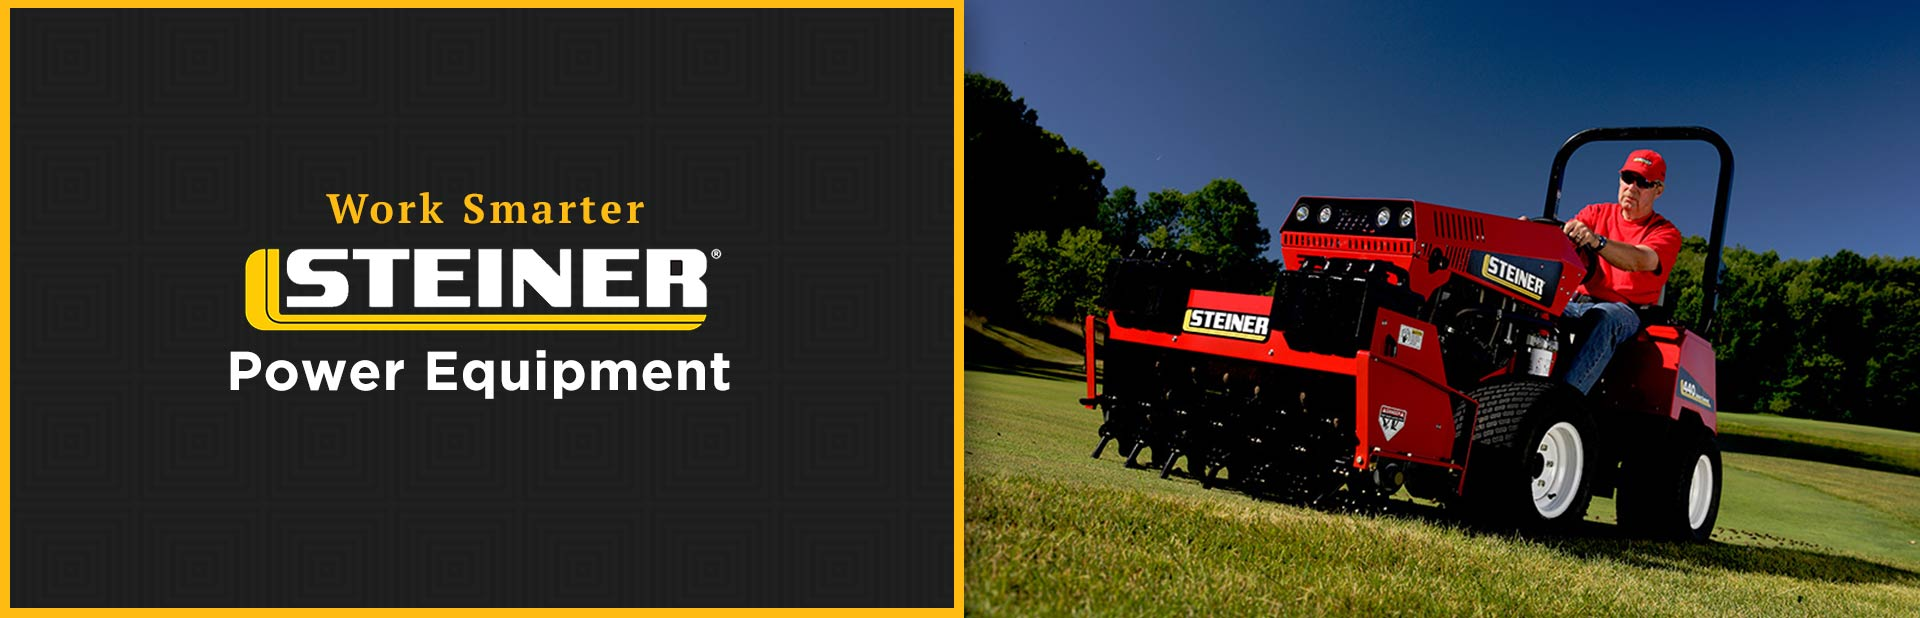 Steiner Power Equipment: Click here to view the models.